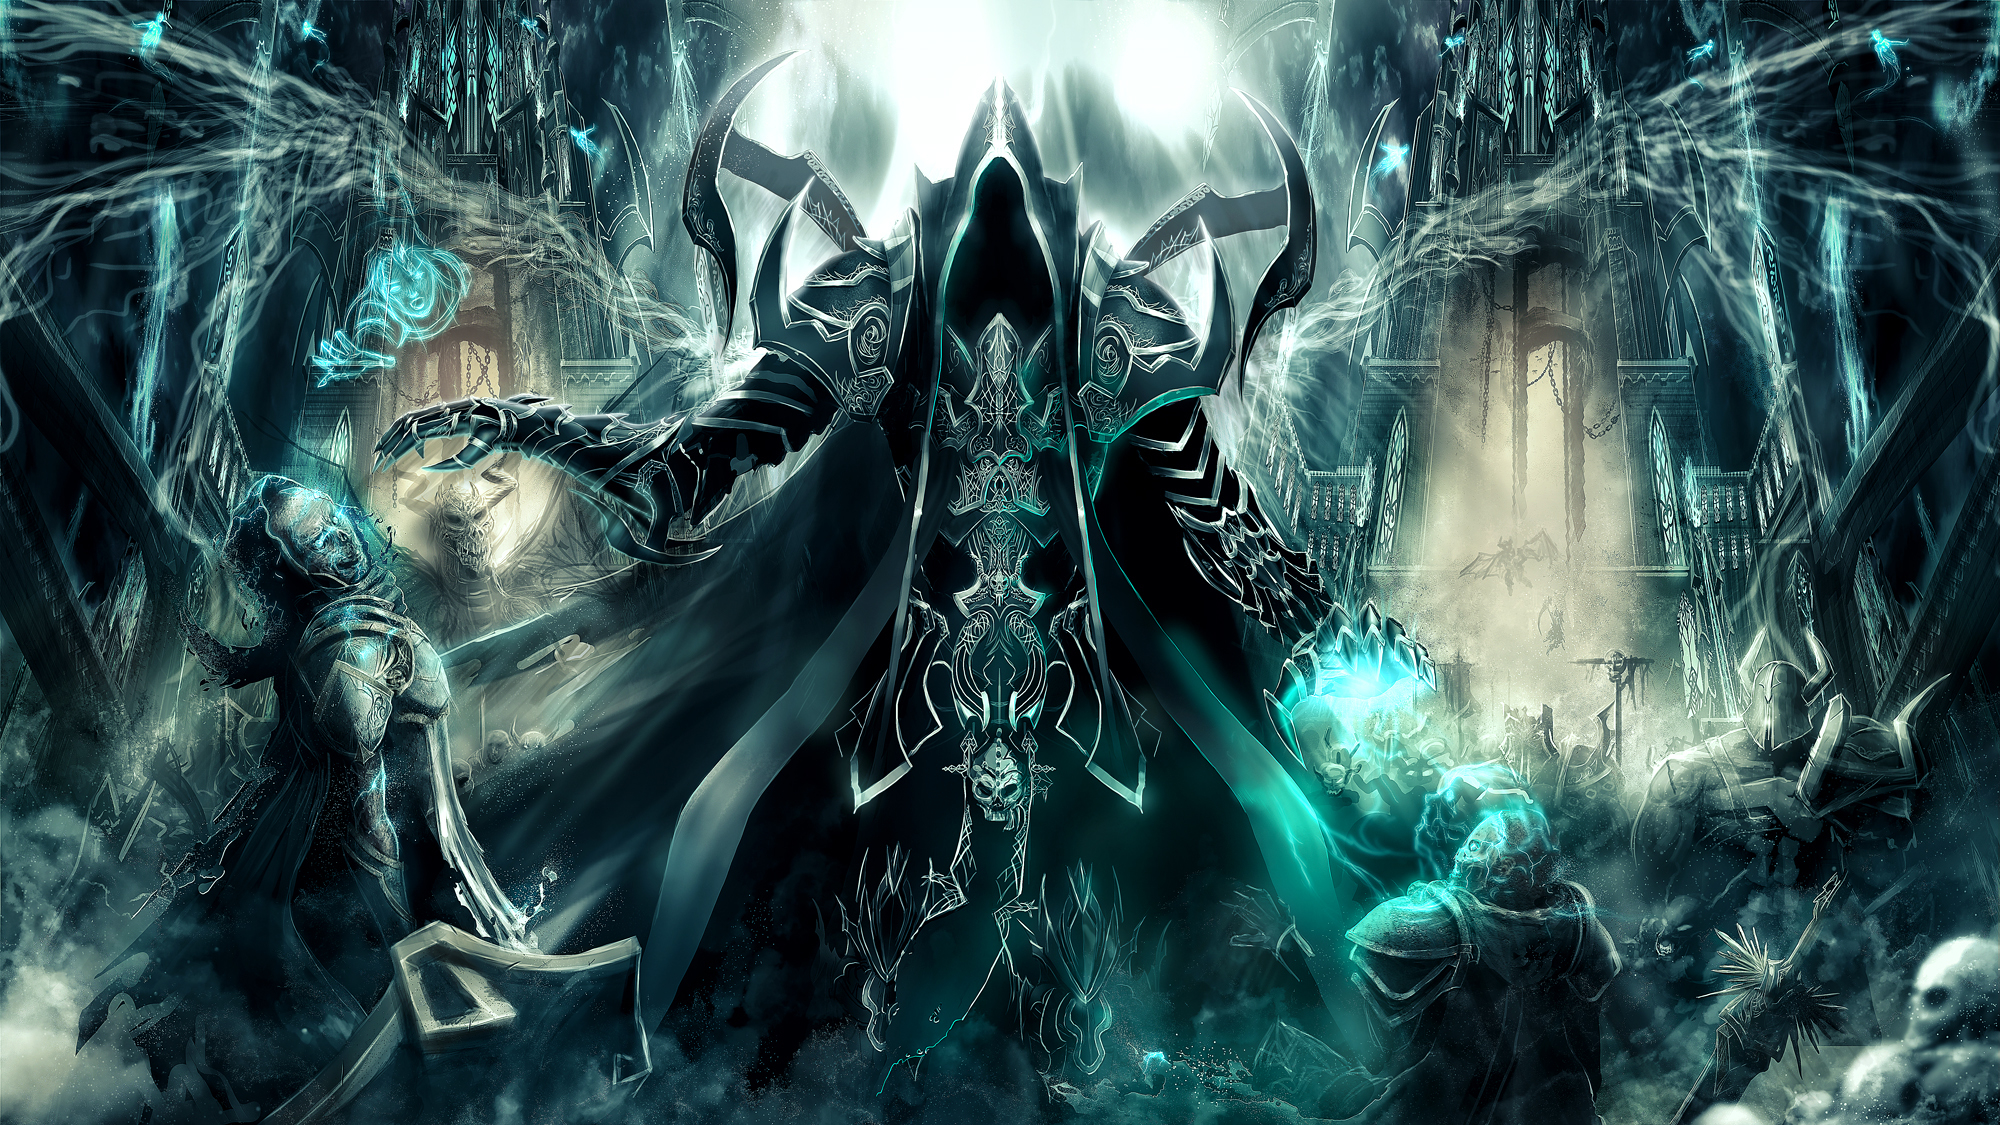 diablo wallpaper 2560x1440 - photo #32